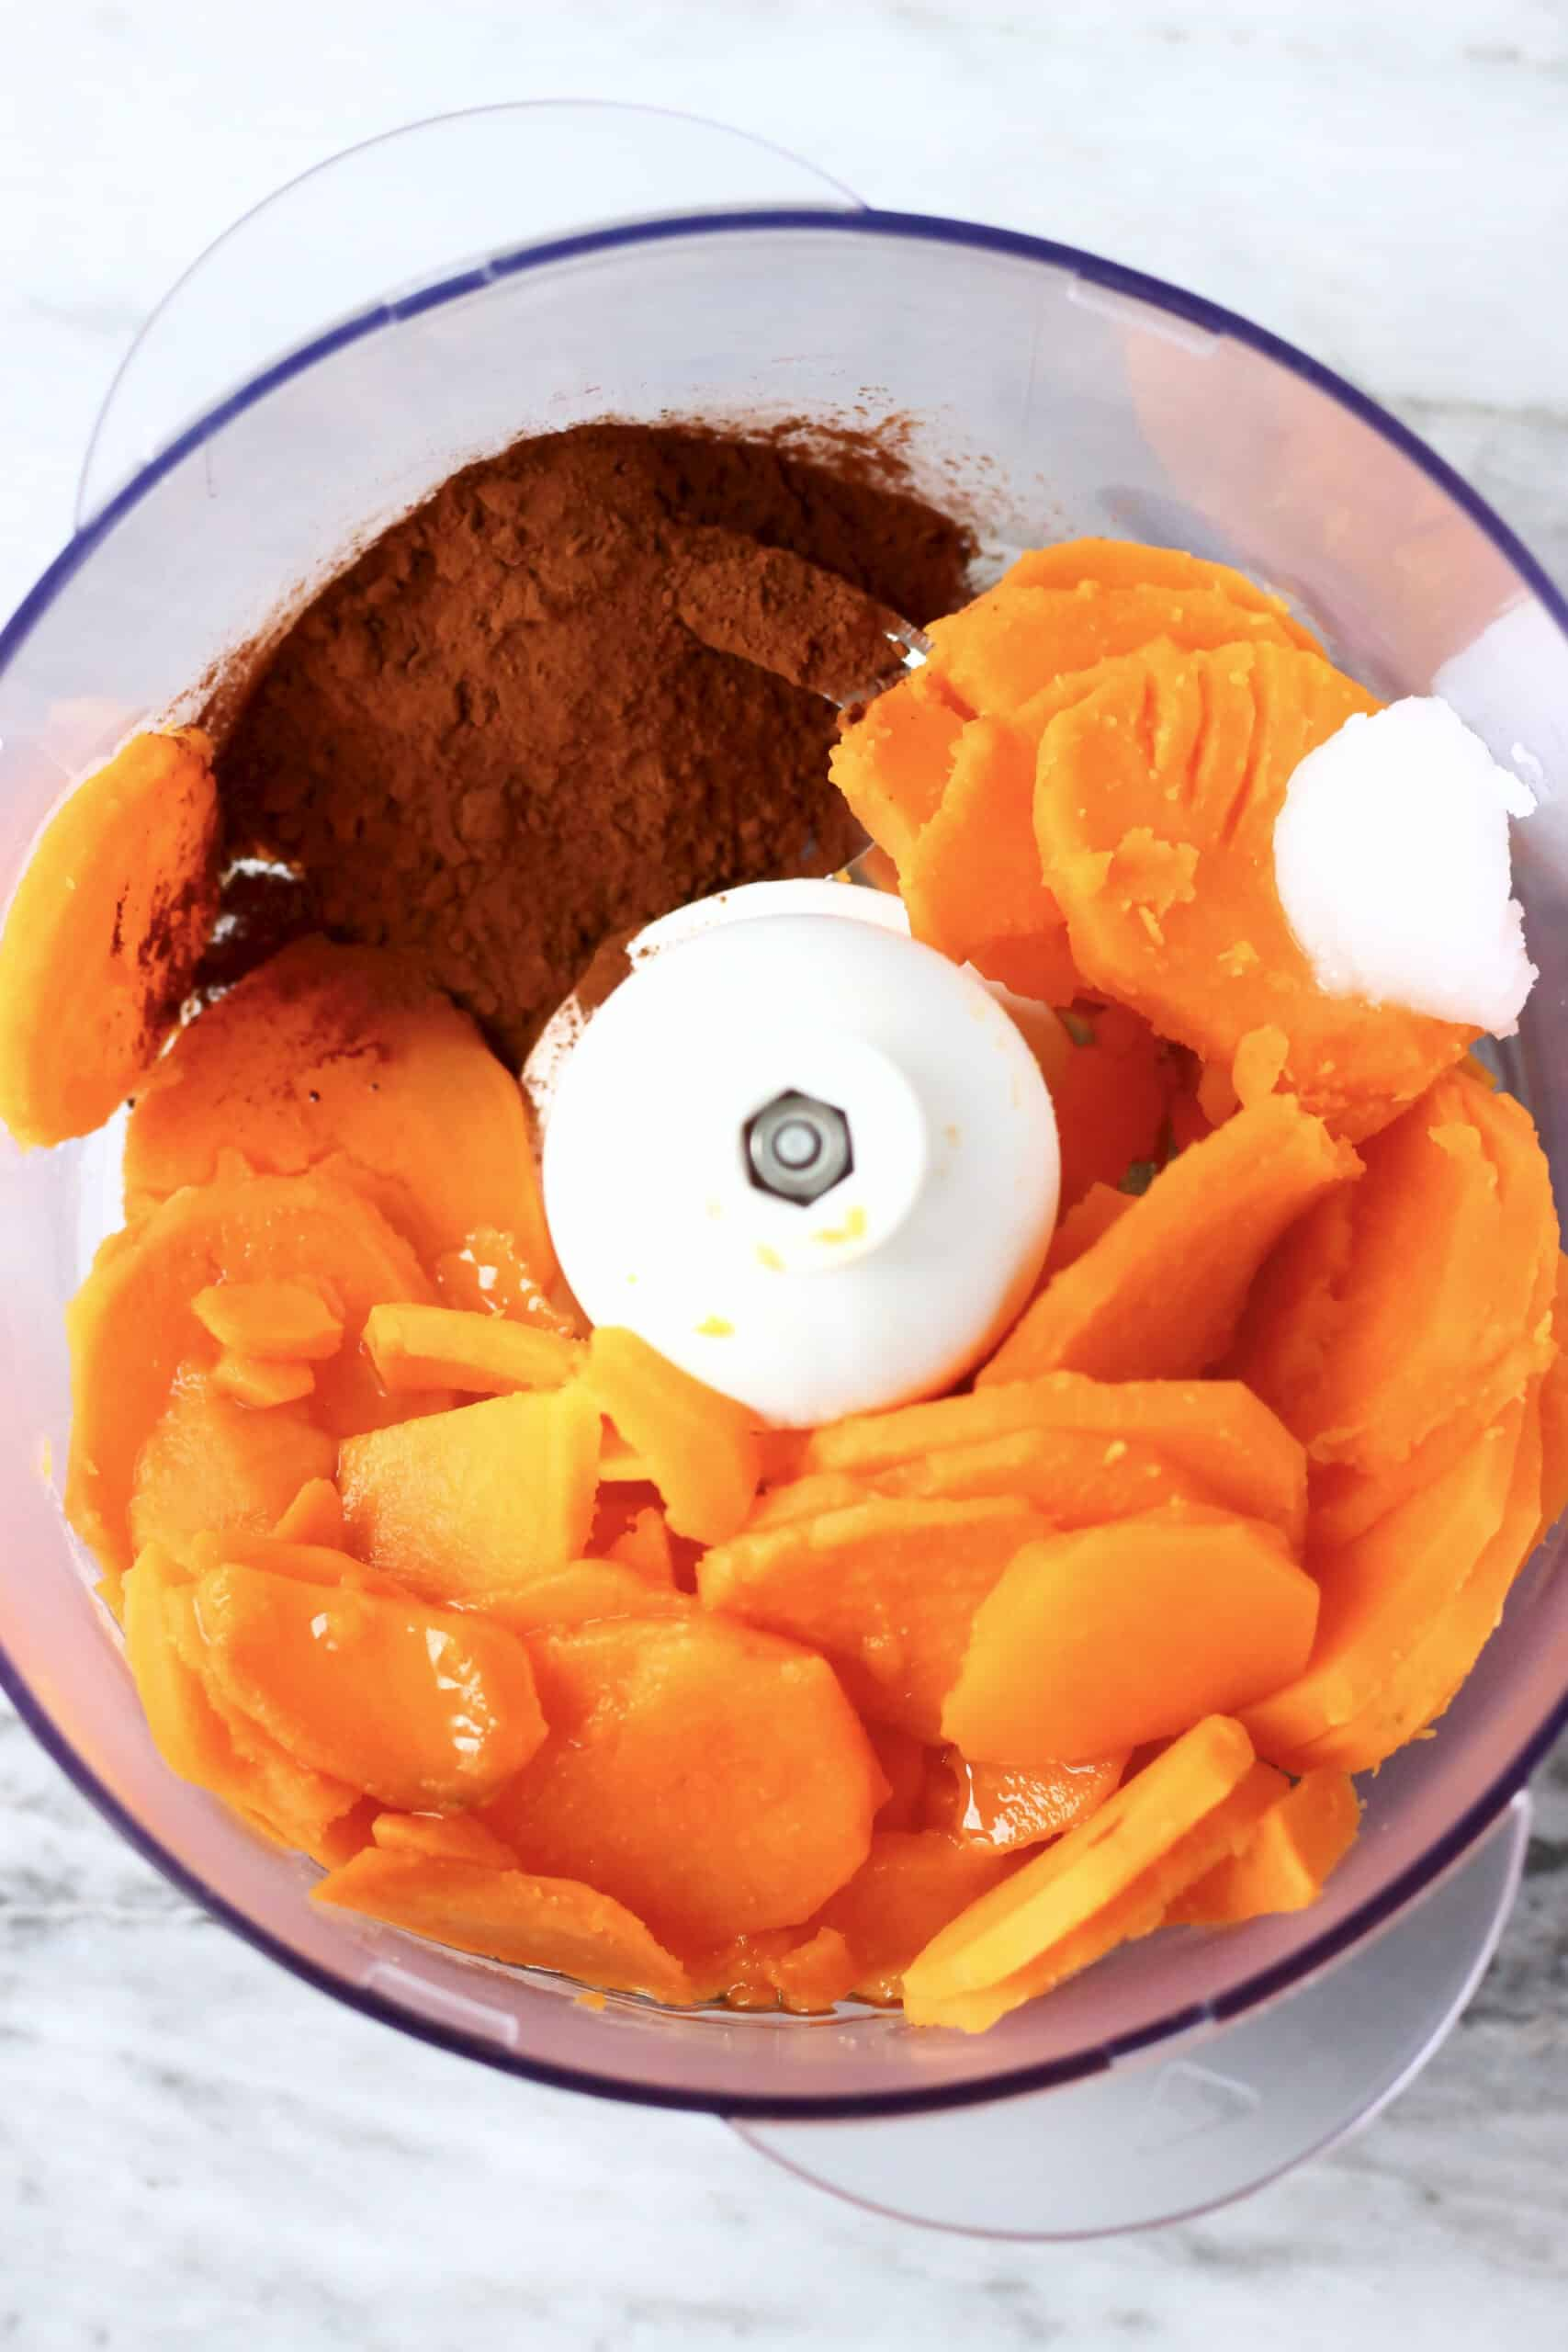 Cooked sweet potato, coconut oil, maple syrup and cocoa powder in a food processor